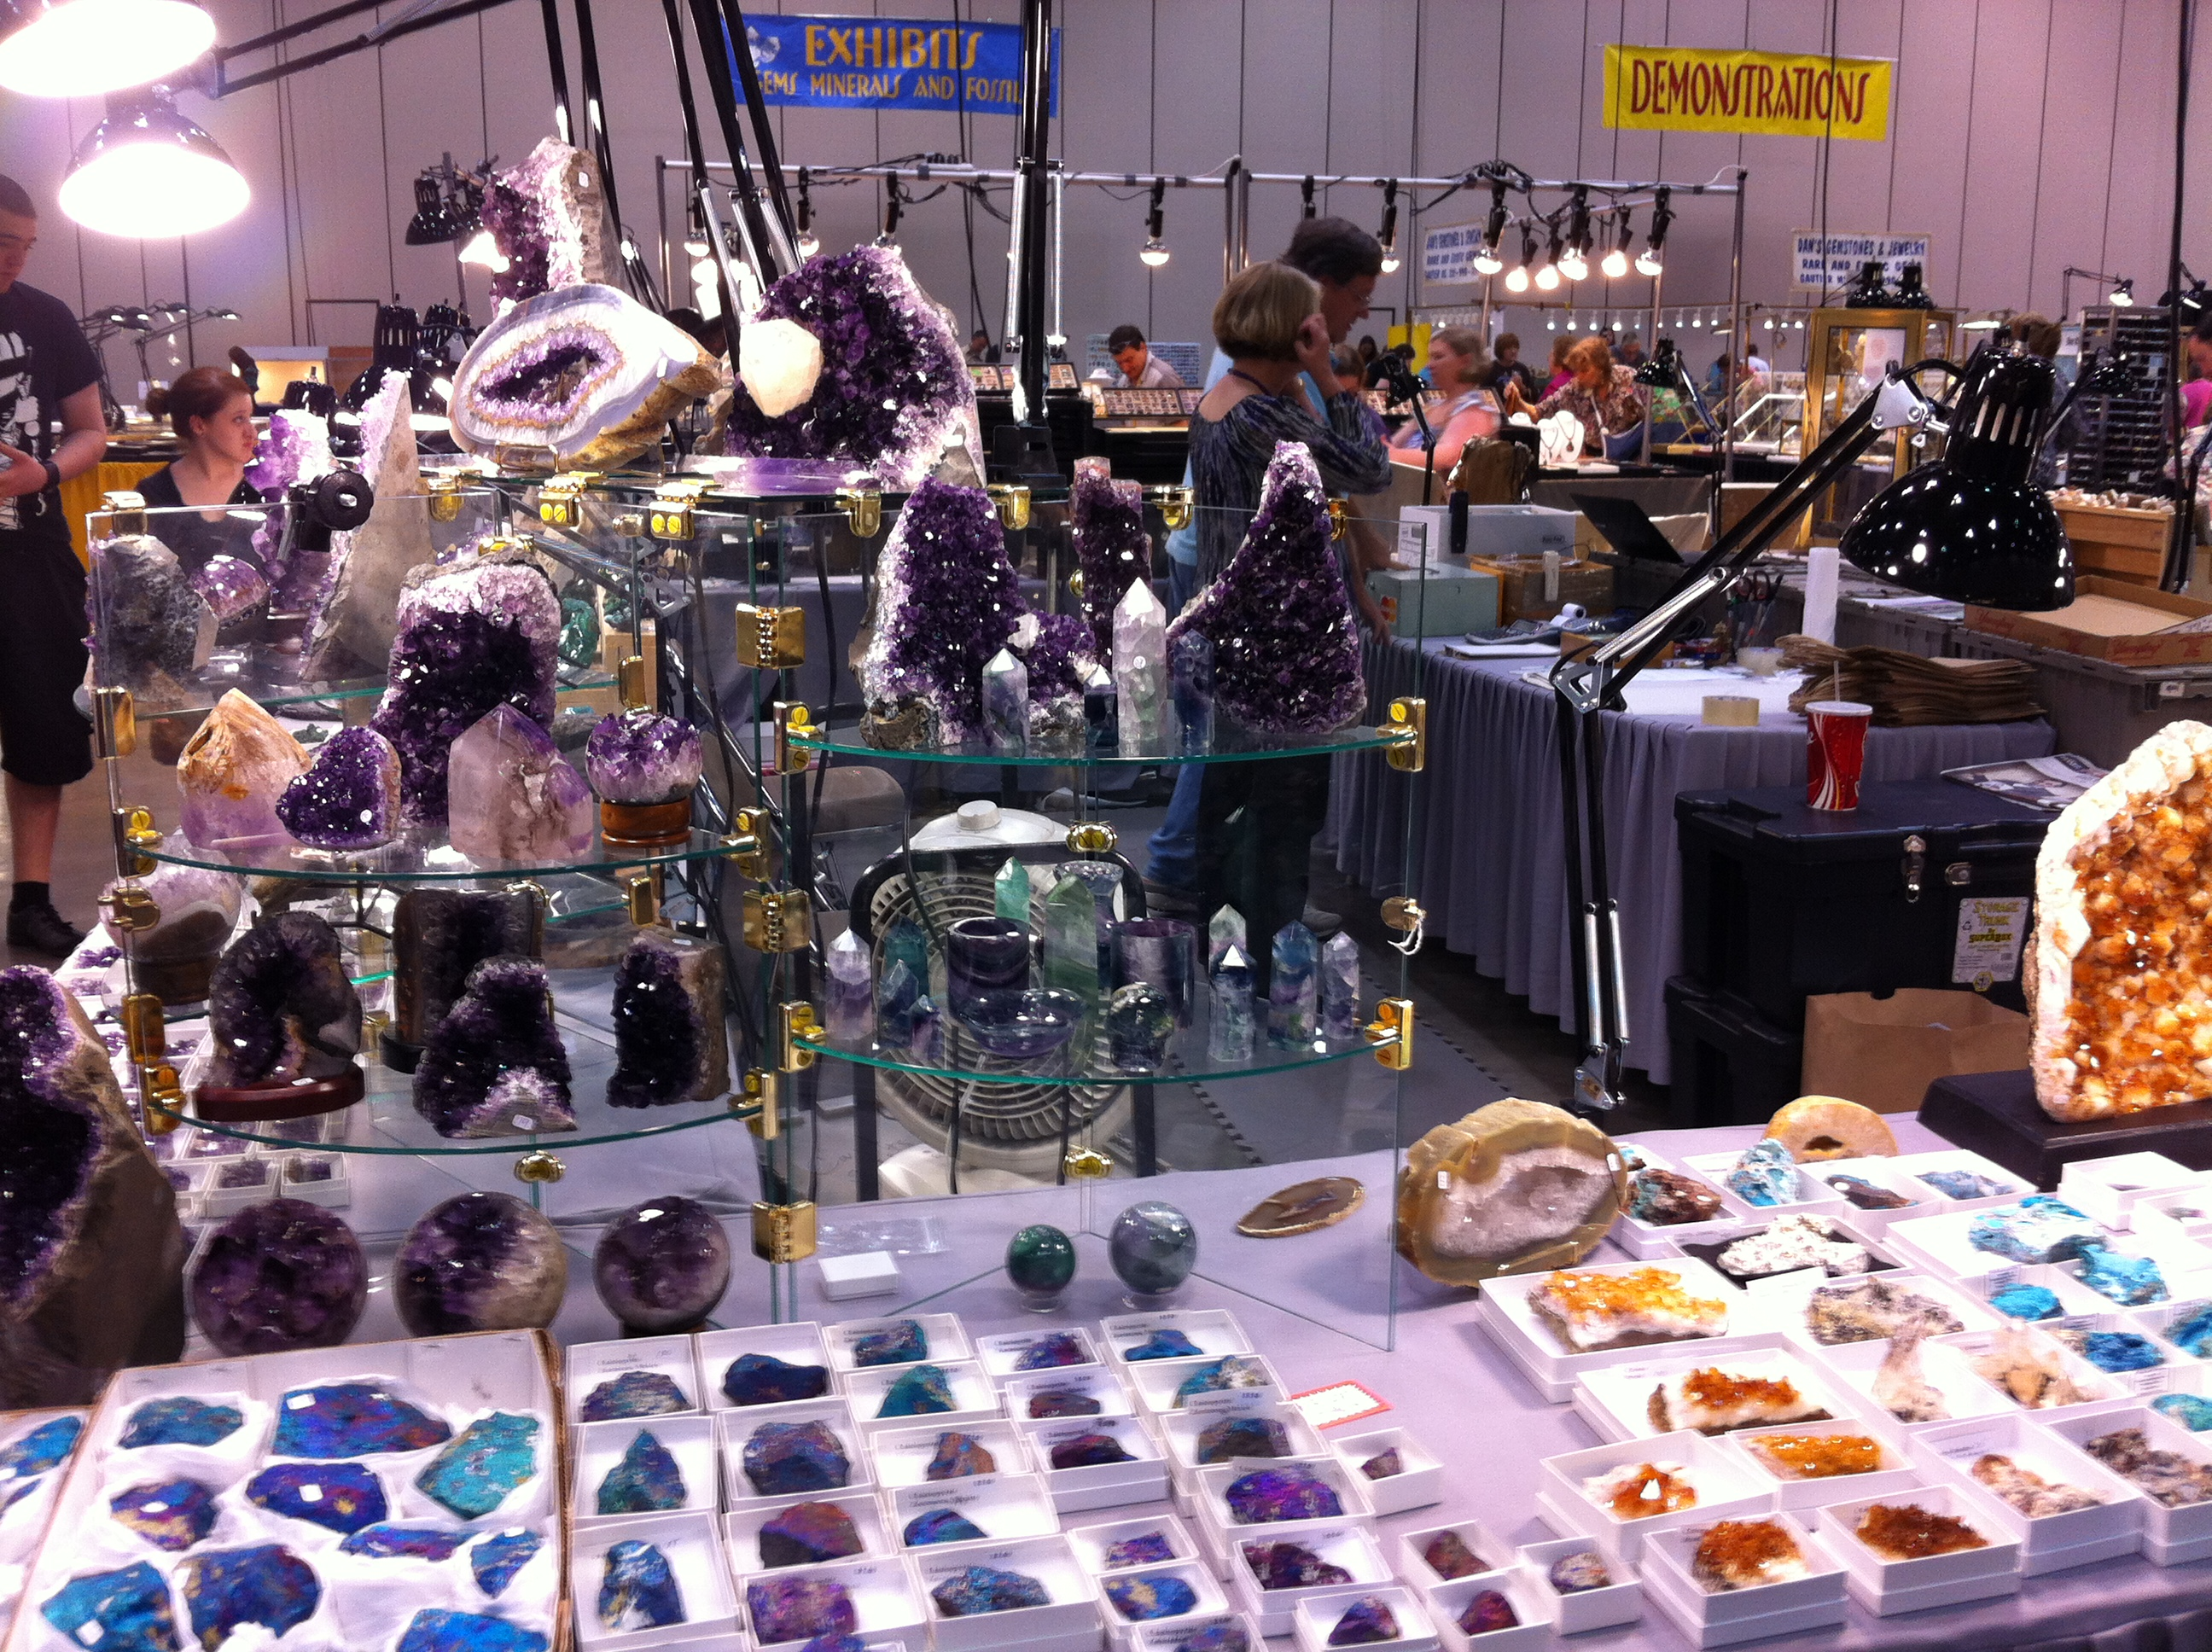 gems at the Huntsville Gem, Mineral and Jewelry Show